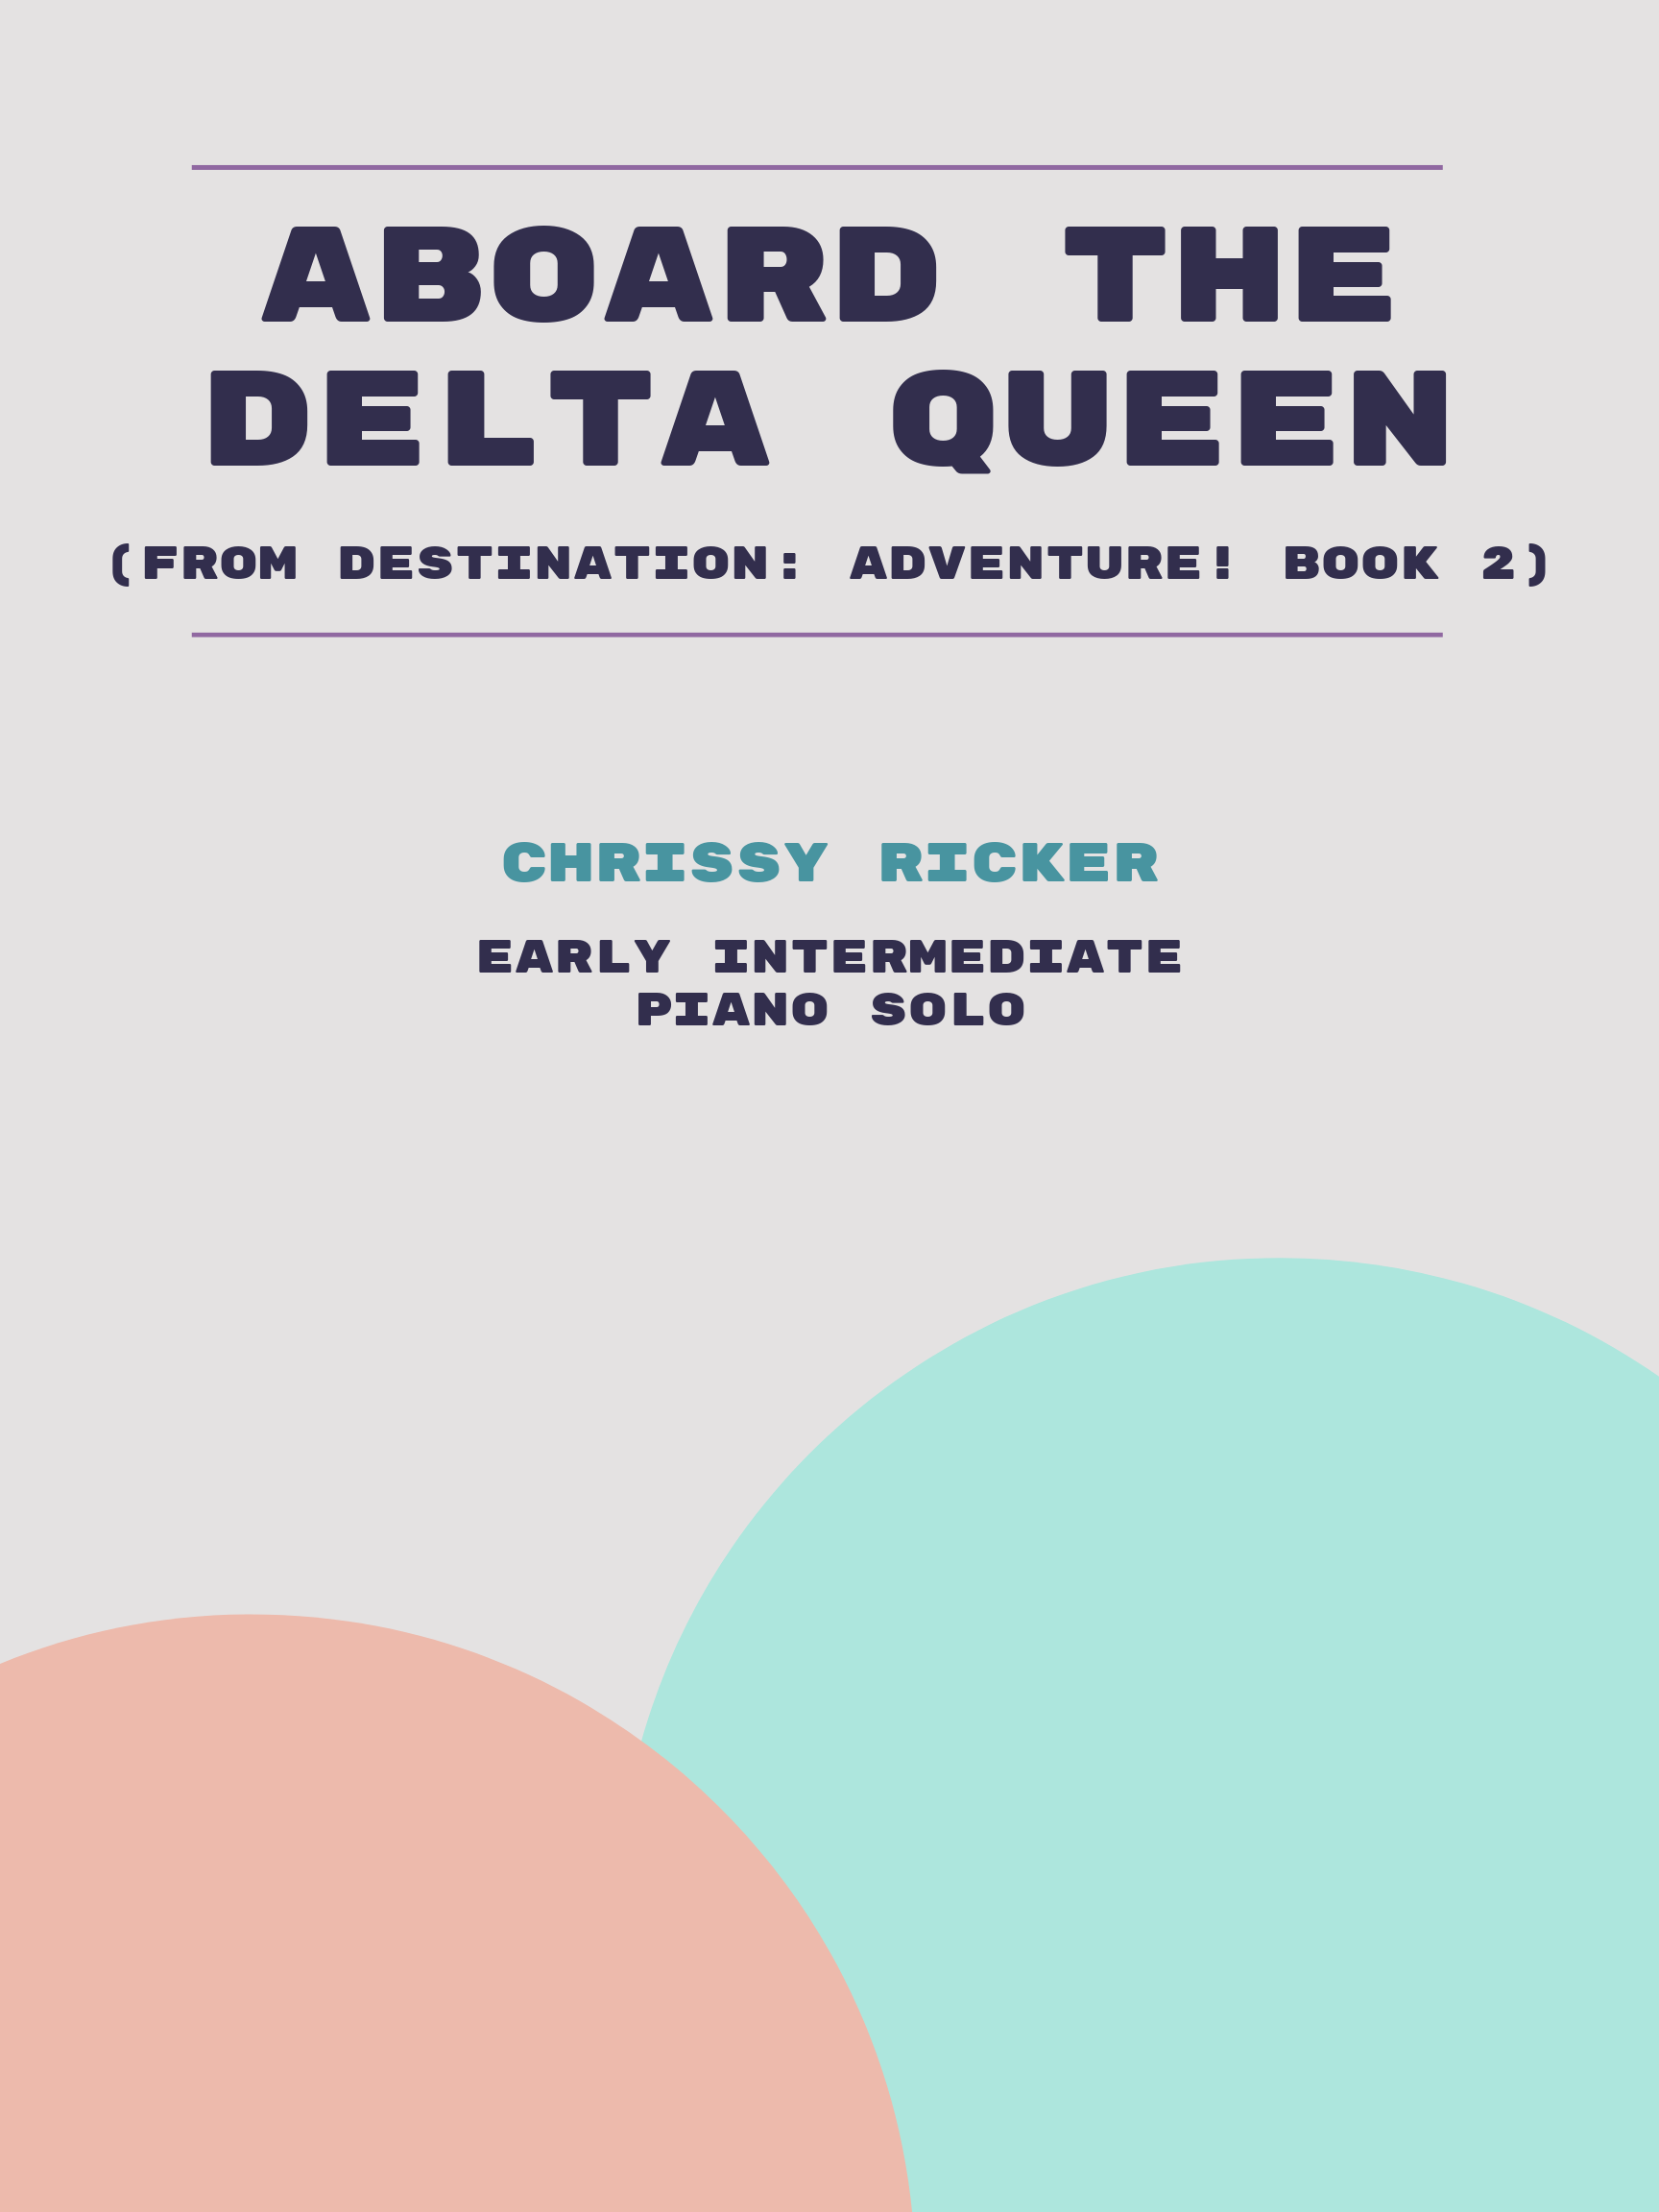 Aboard the Delta Queen by Chrissy Ricker